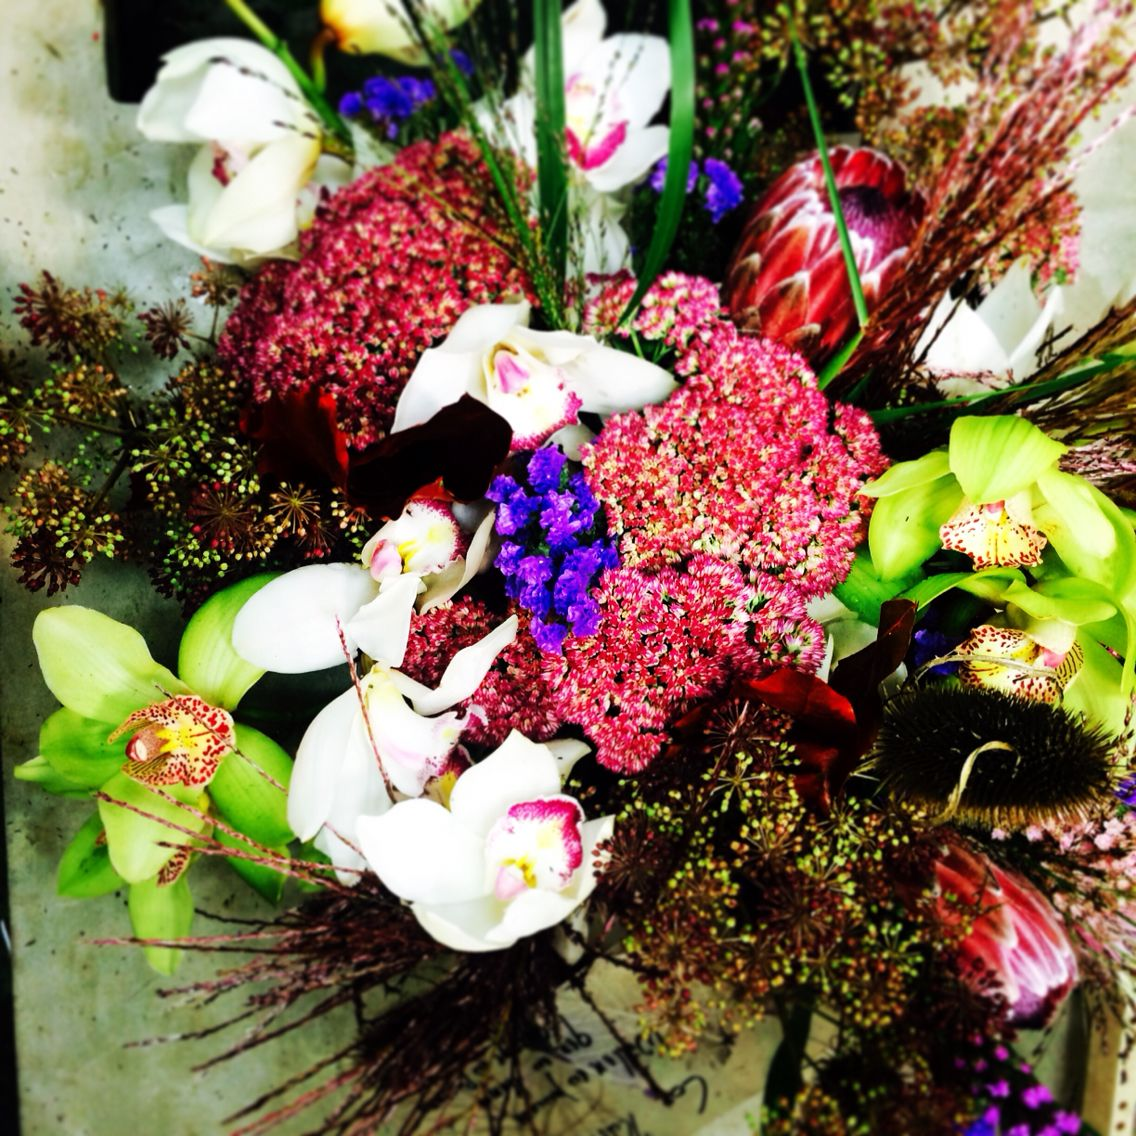 Flowers for the last goodbye #bloomsstore #autumn #fresh #savage #orderanytime 06-29082882/0229-297684